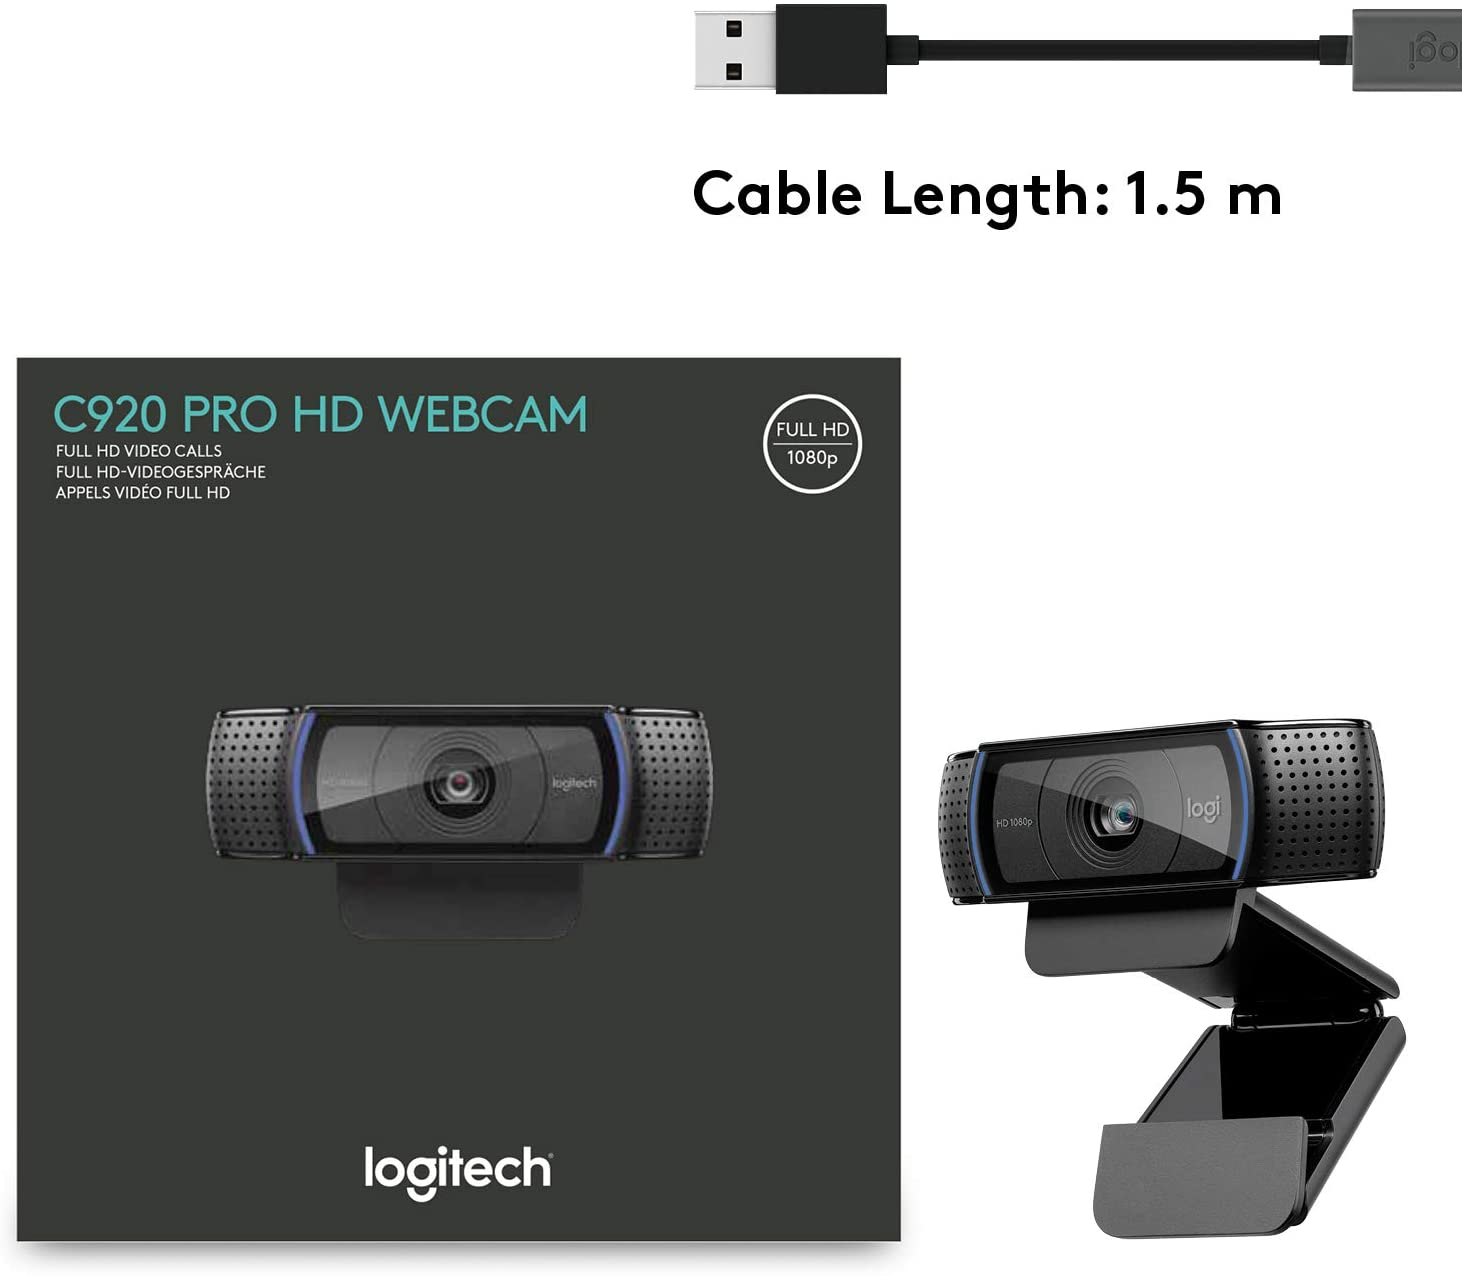 Logitech C920 Pro Webcam Full 1080p 30fps Video Calling Clear Stereo Audio Light Correction Works with Skype Zoom FaceTime Hangouts Mac Laptop Macbook Tablet Black